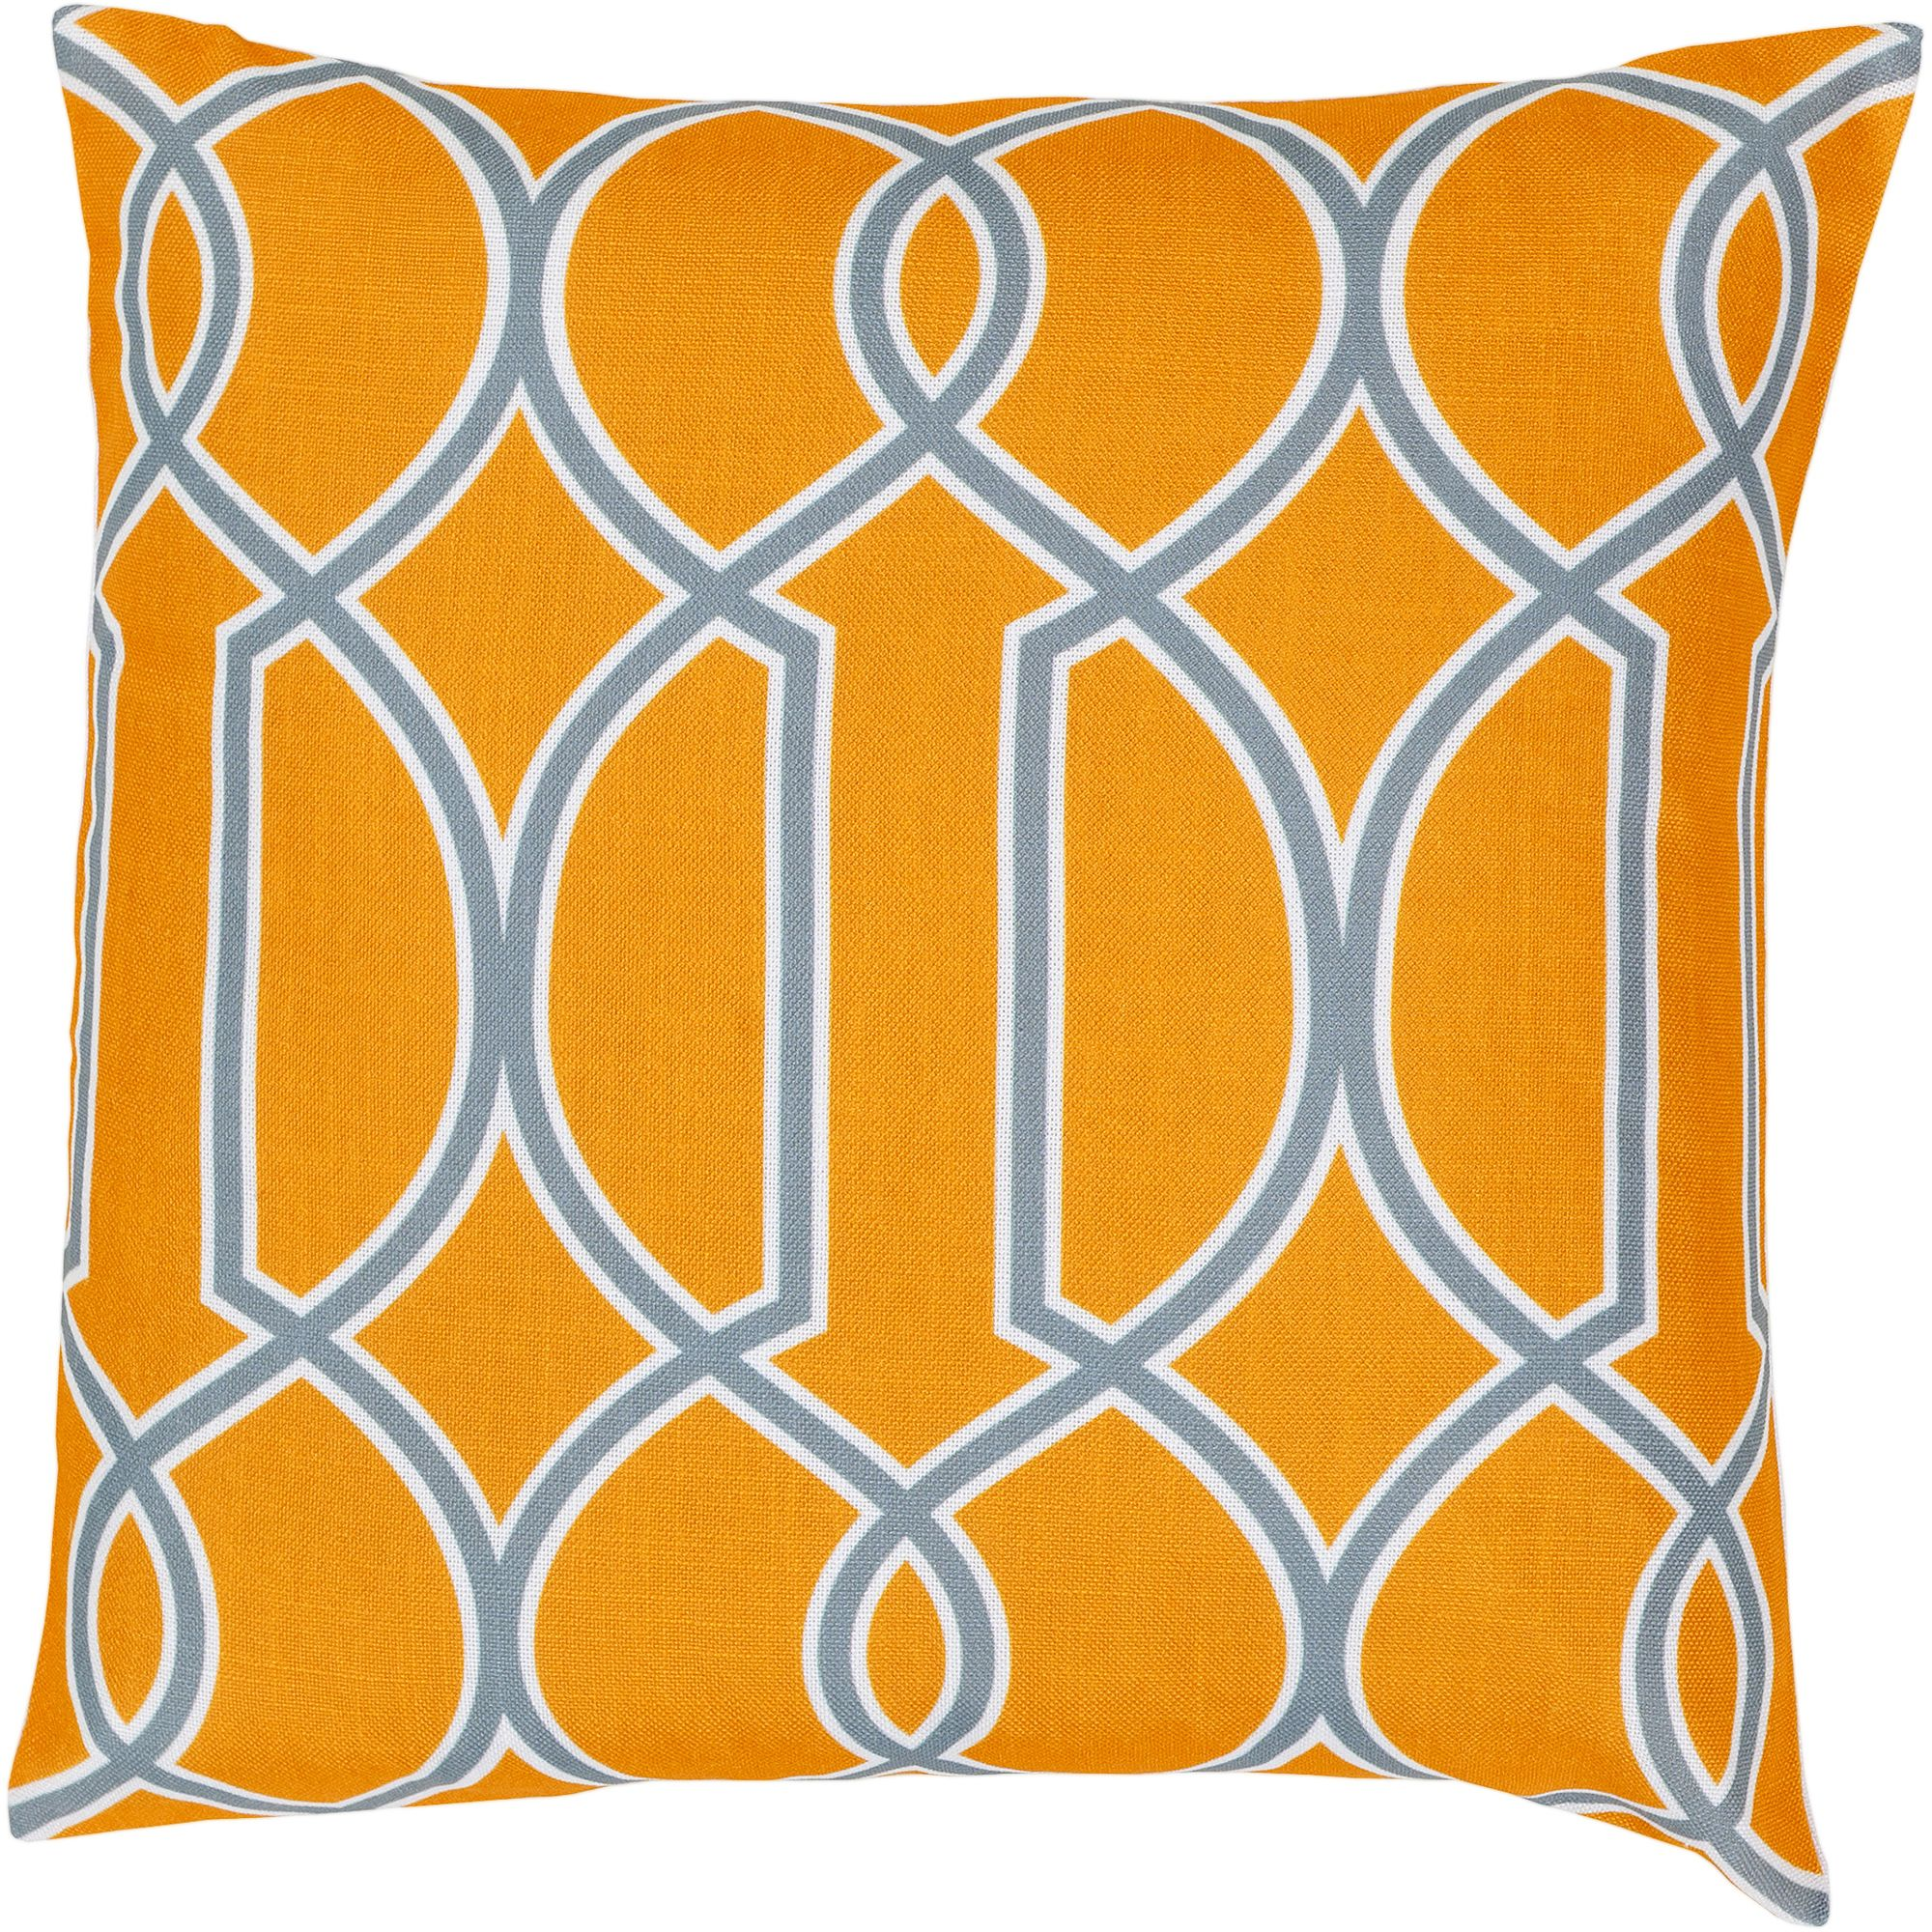 Art of Knot Bentley Hand Crafted Geometric Trellis Decorative Pillow with Poly Filler, Tangerine